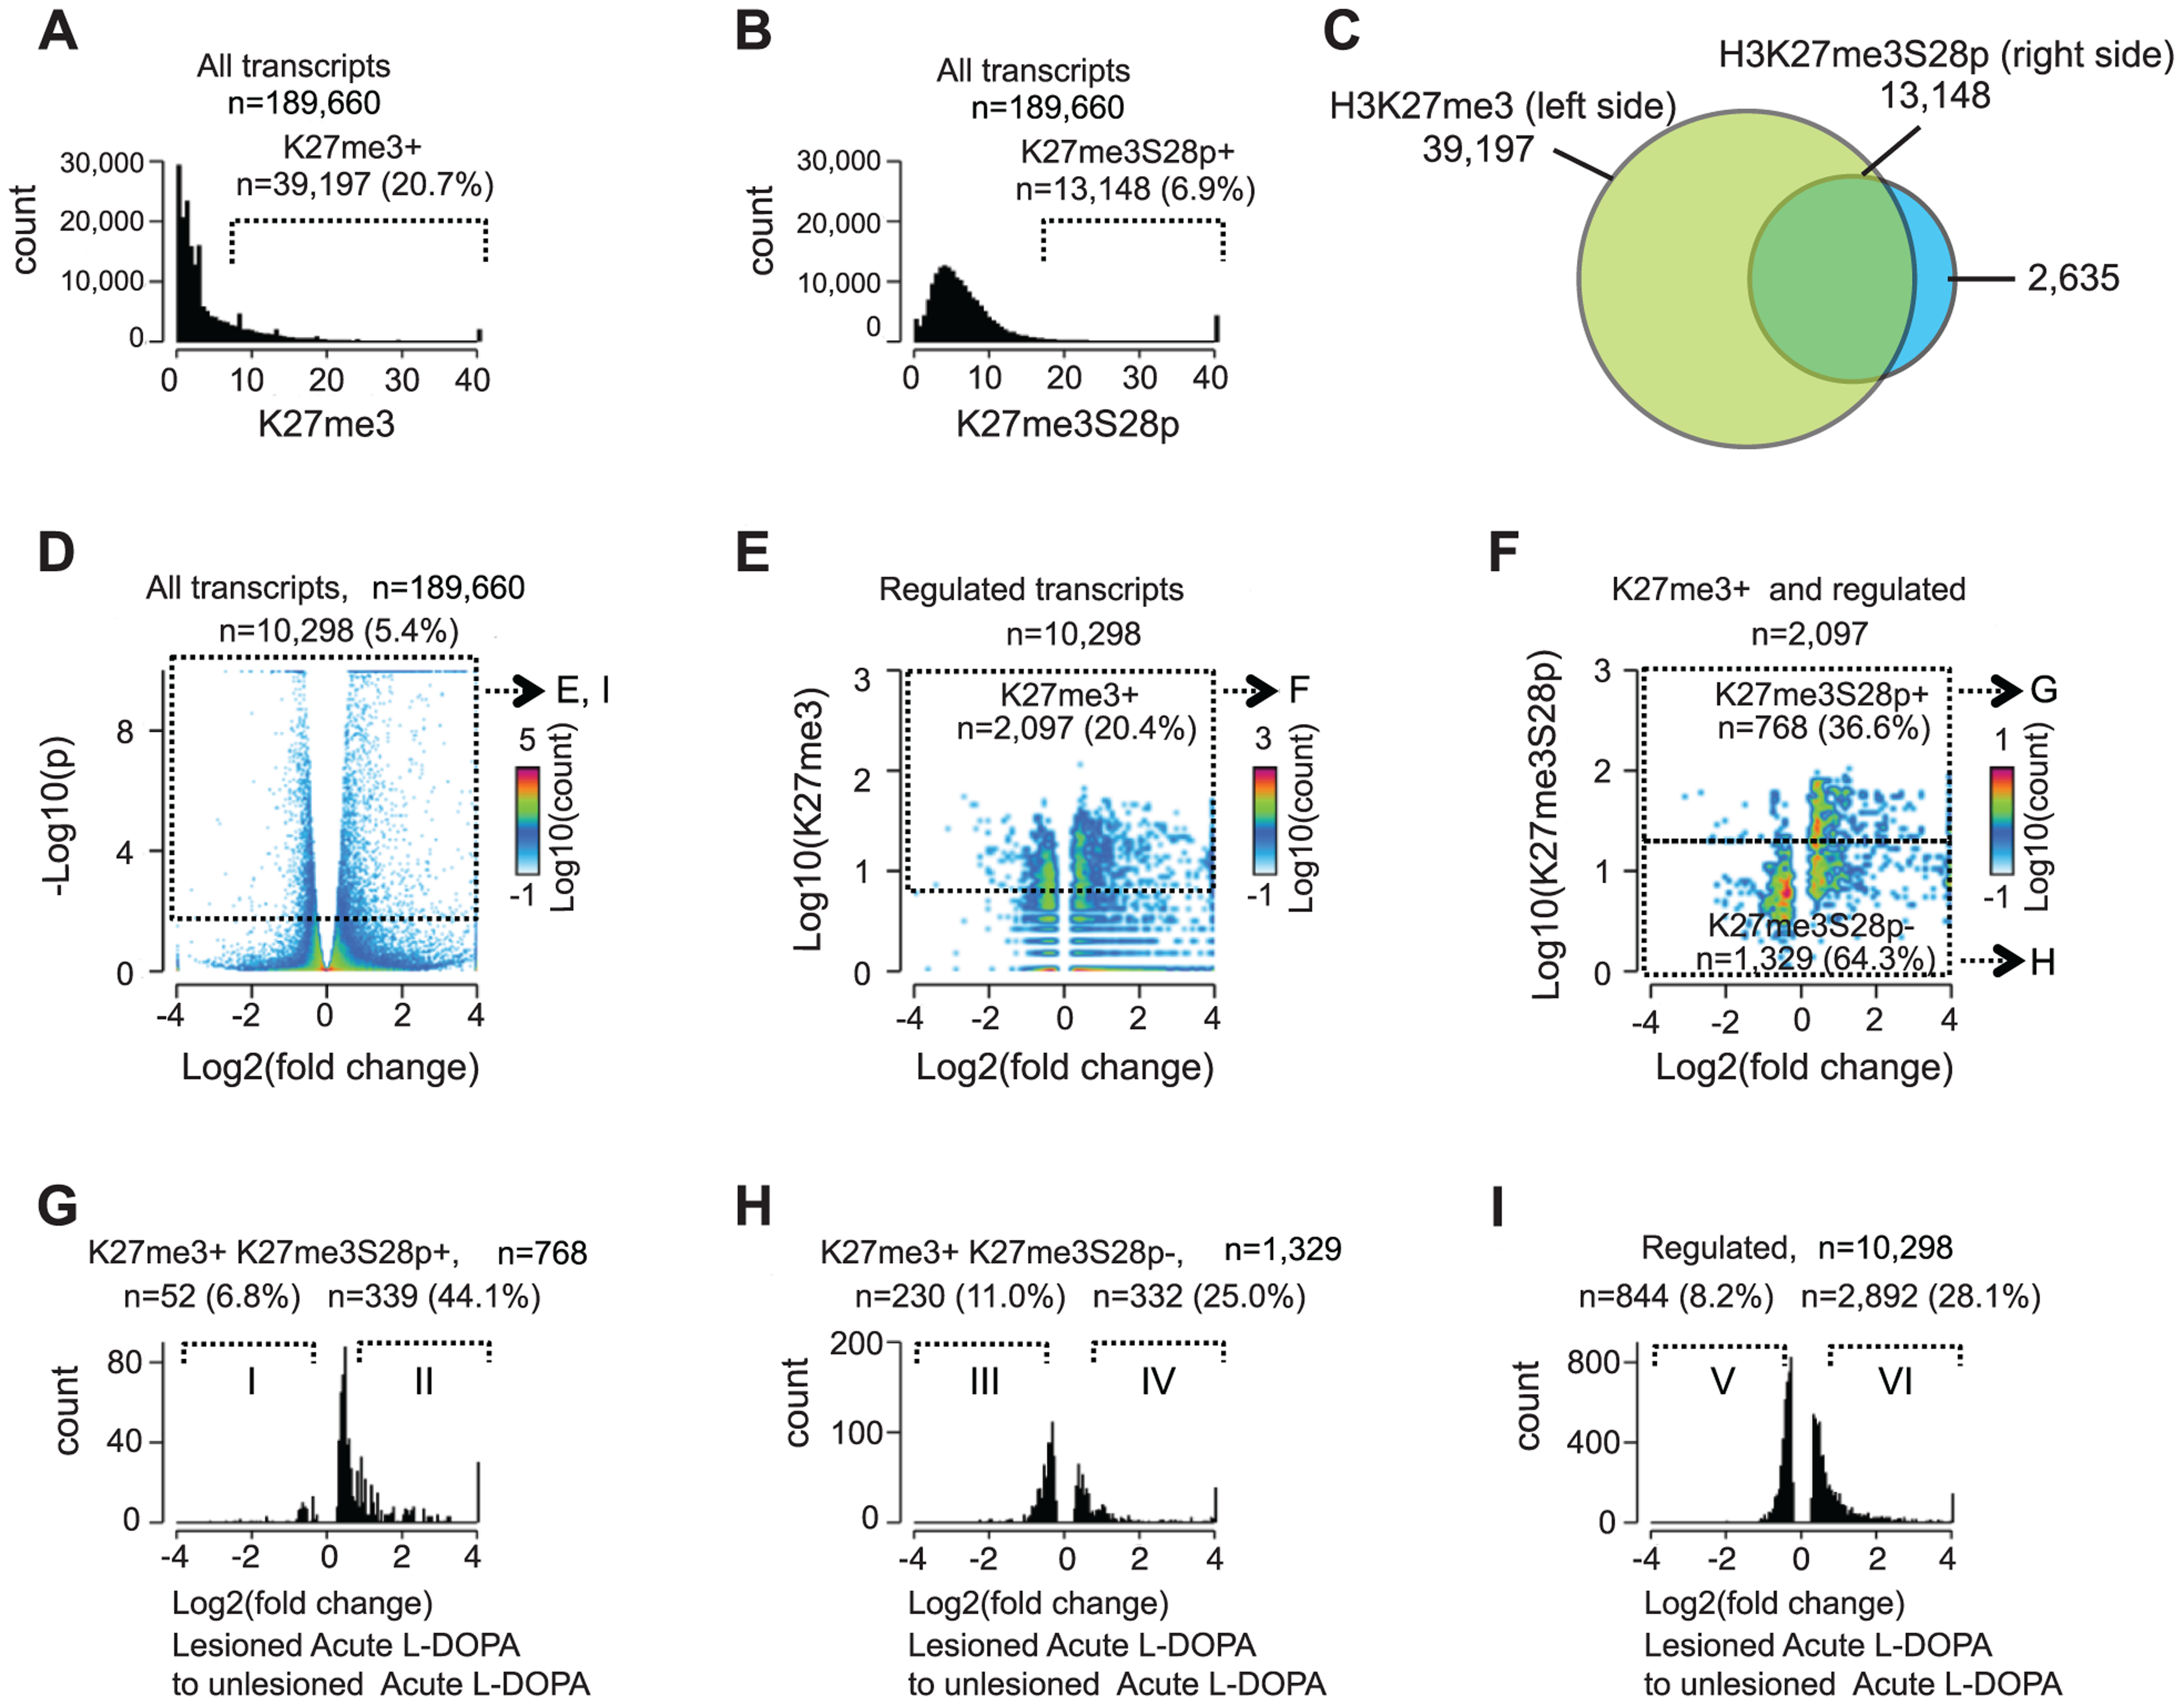 Induction of H3K27me3S28 phosphorylation genome wide correlates with an increase of mRNA transcripts from H3K27me3 marked gene loci.